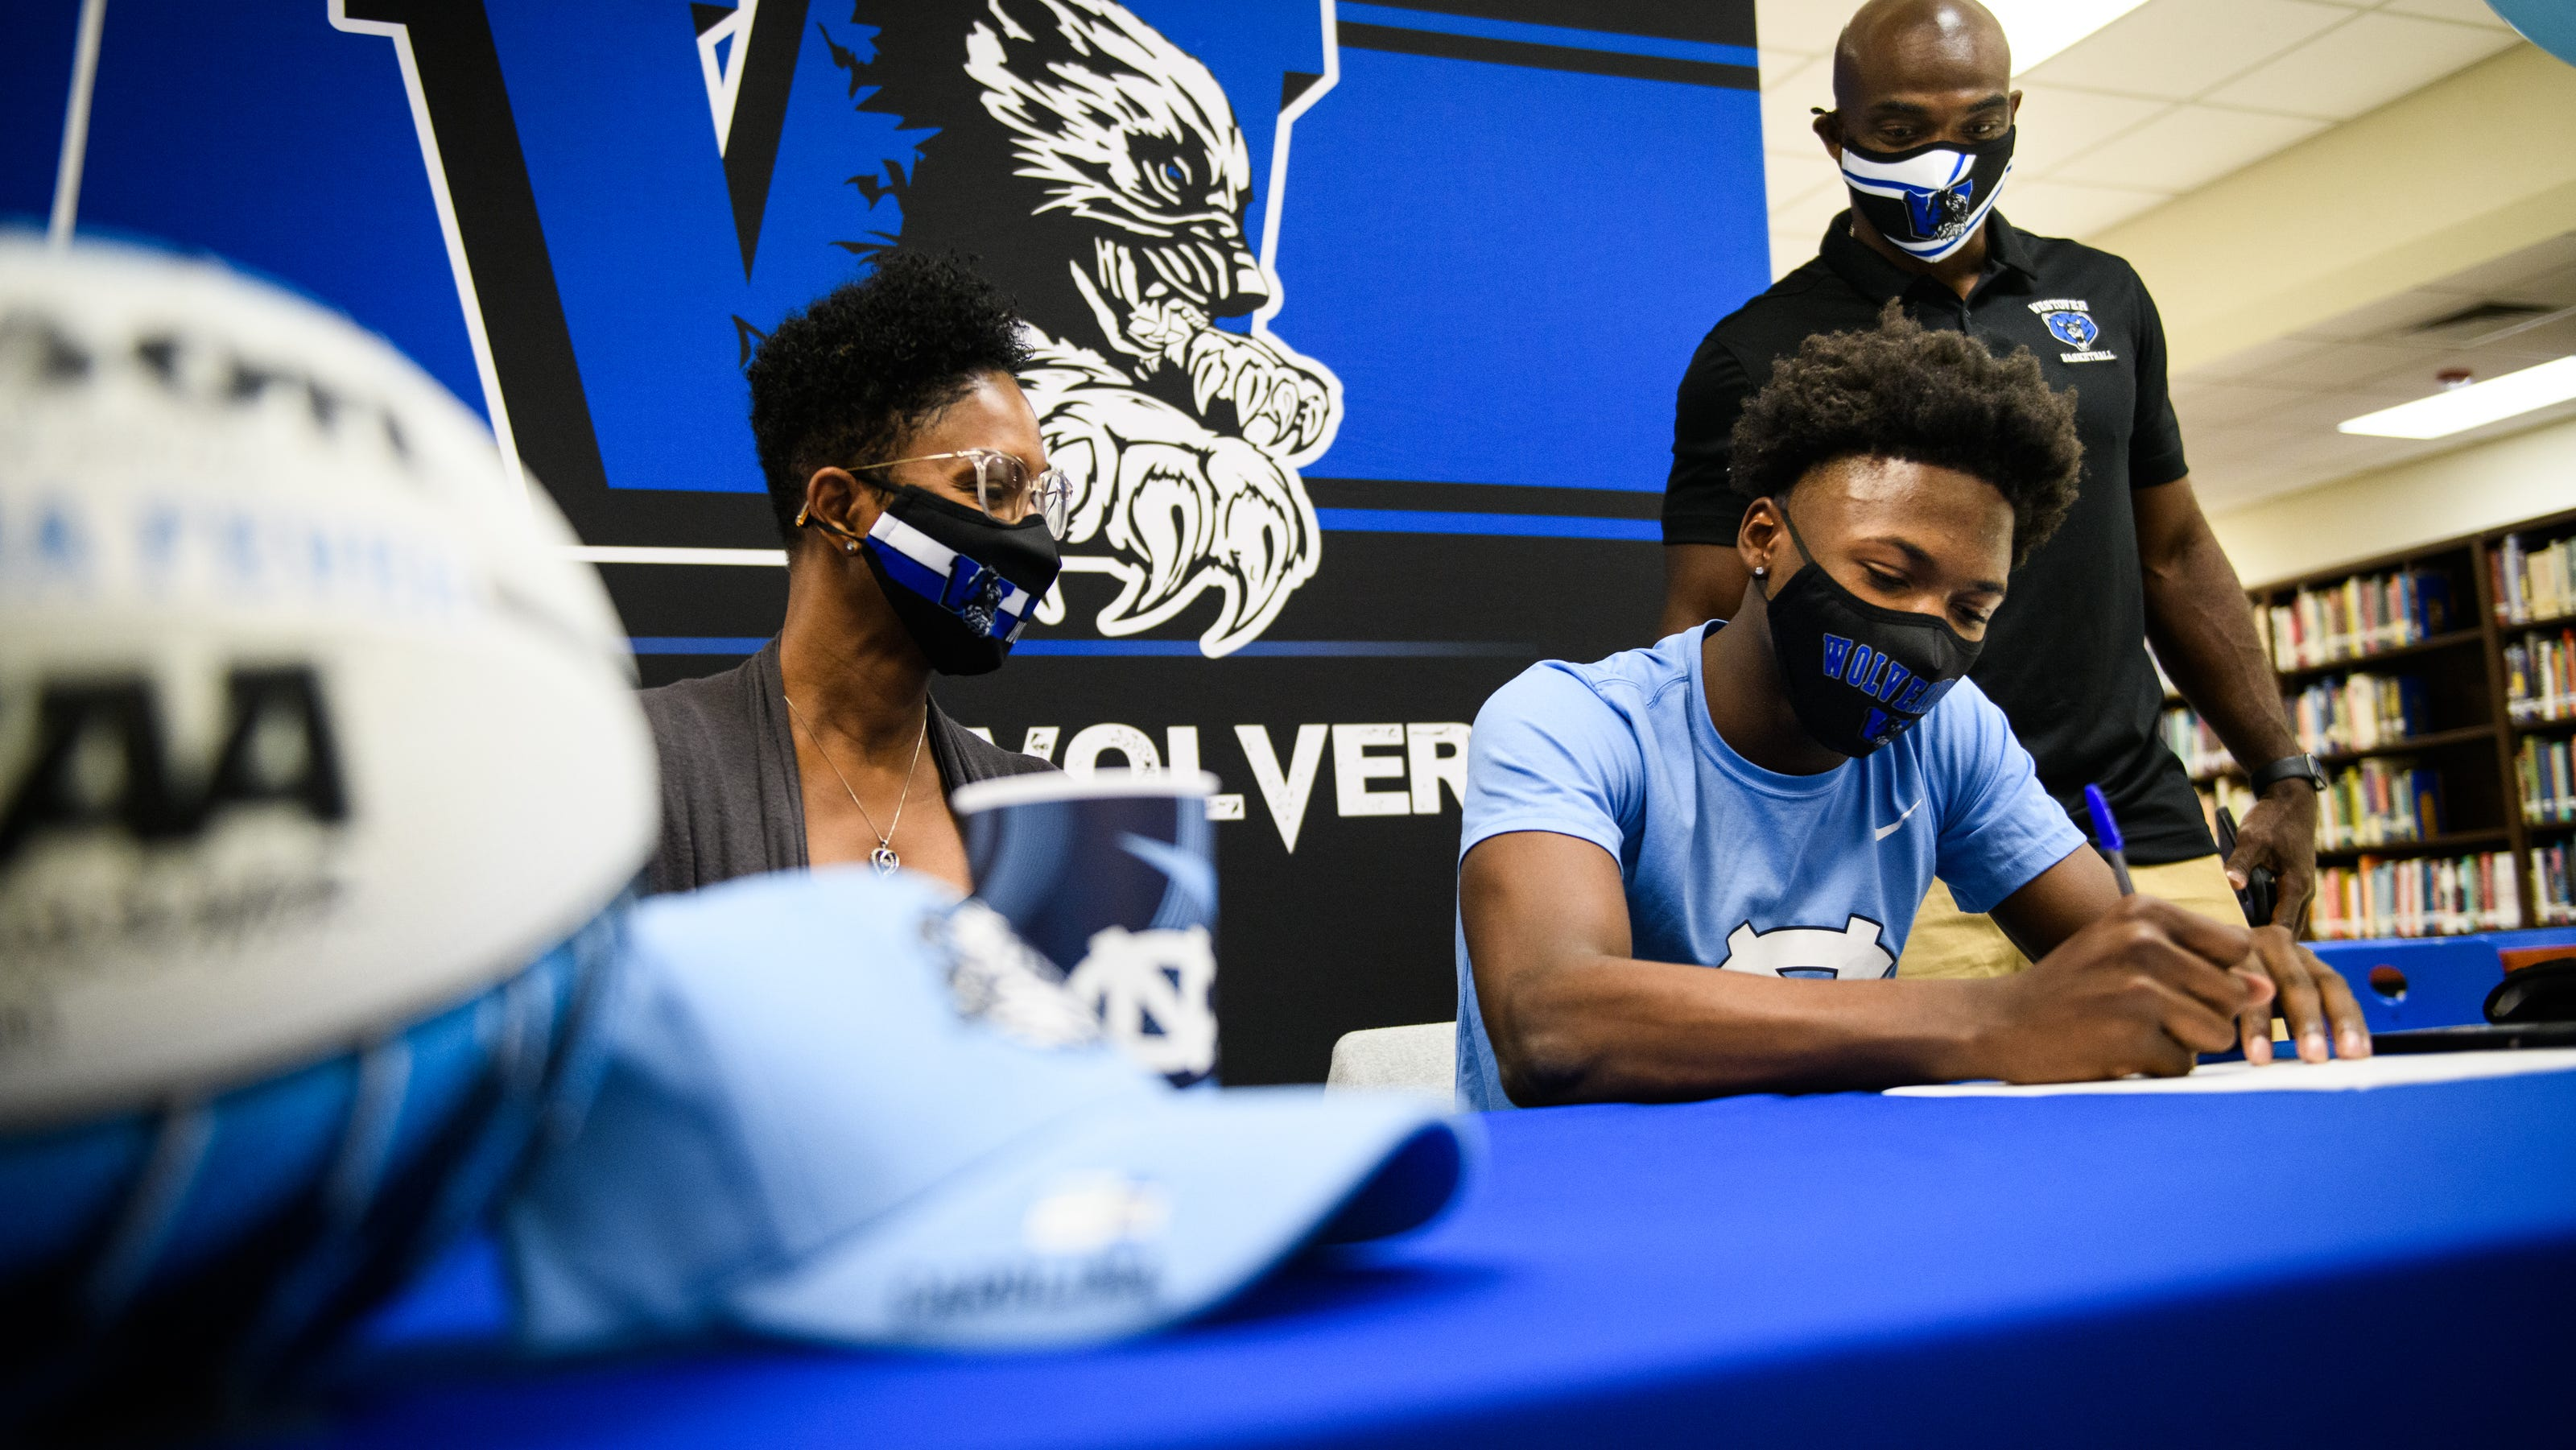 D'Marco Dunn will make history for UNC basketball in 2021